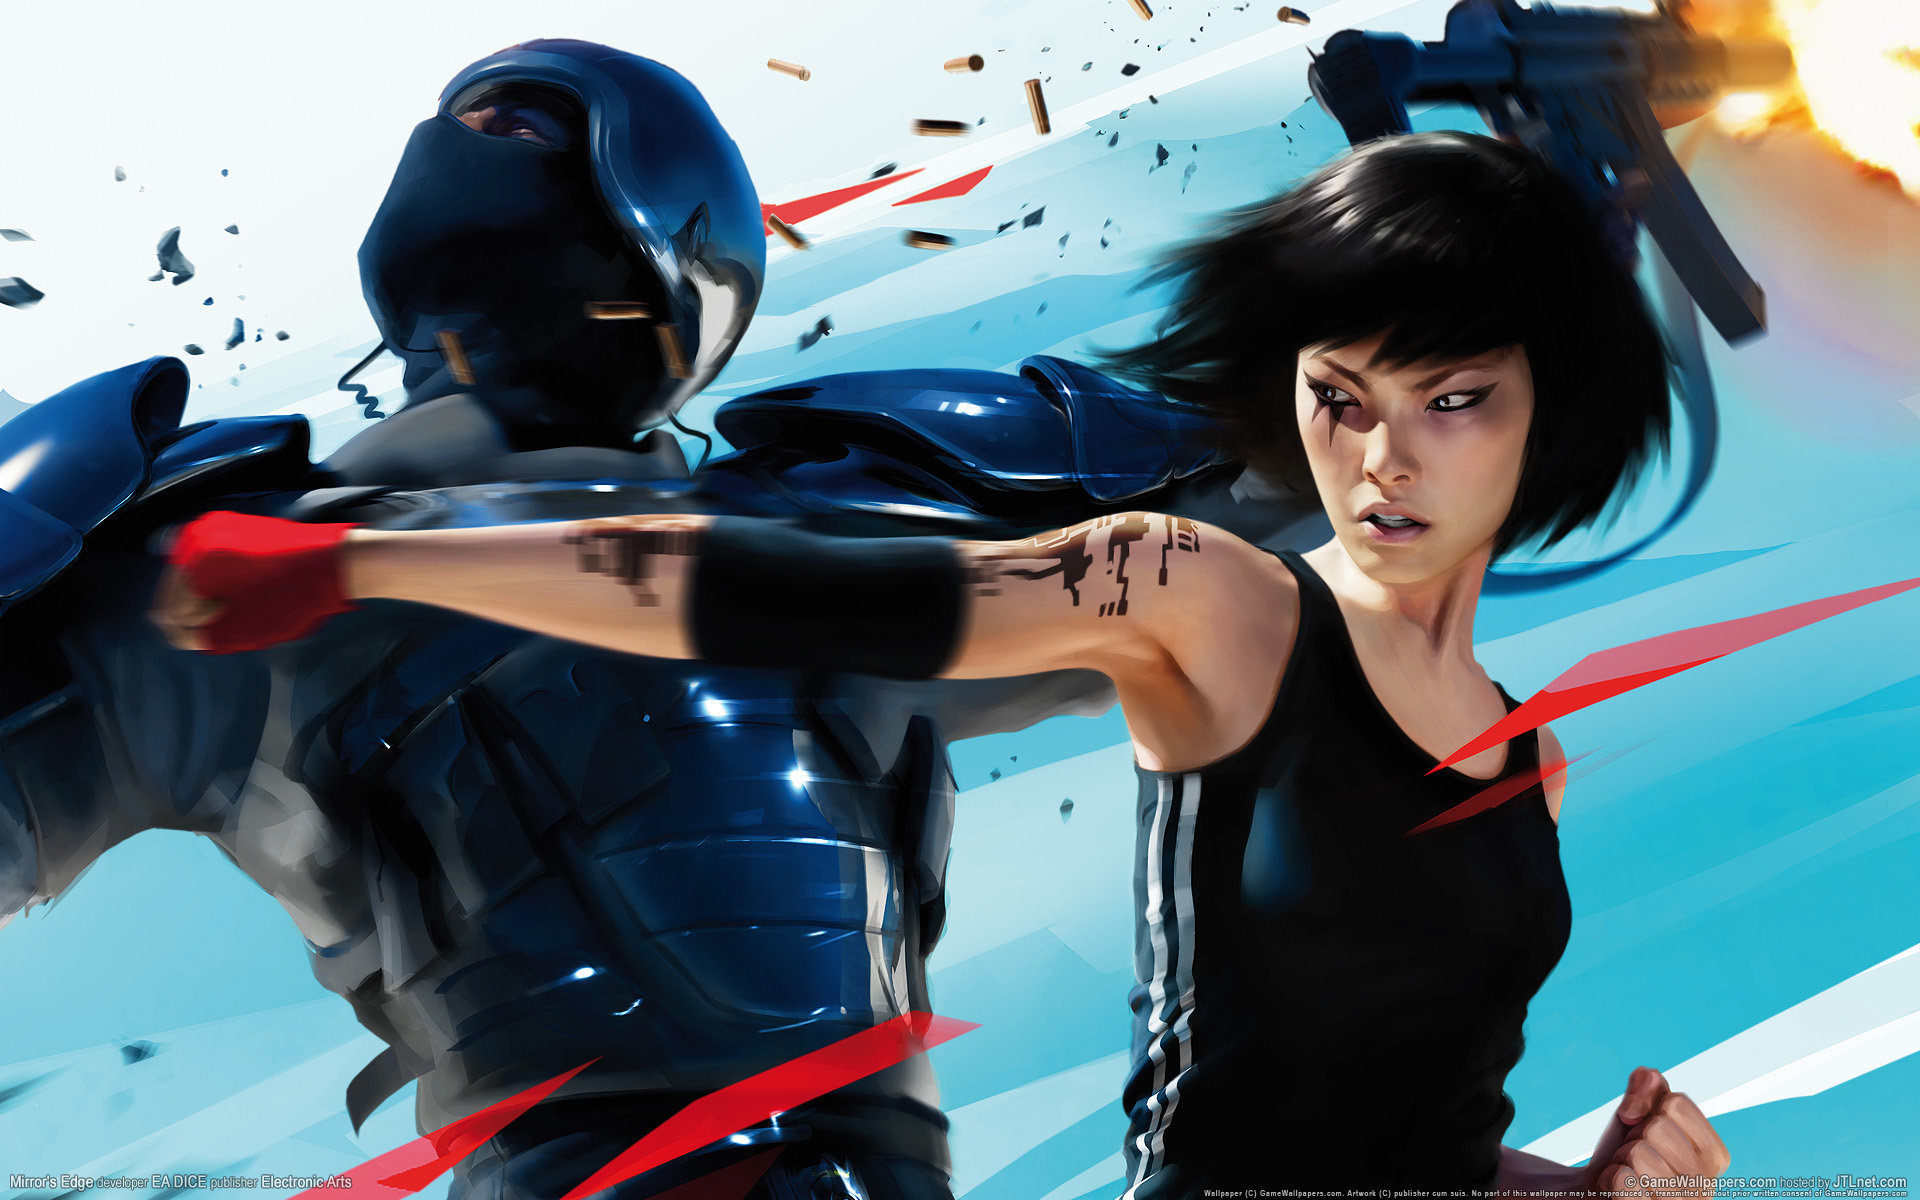 Awesome Mirror's Edge free wallpaper ID:324533 for hd 1920x1200 desktop